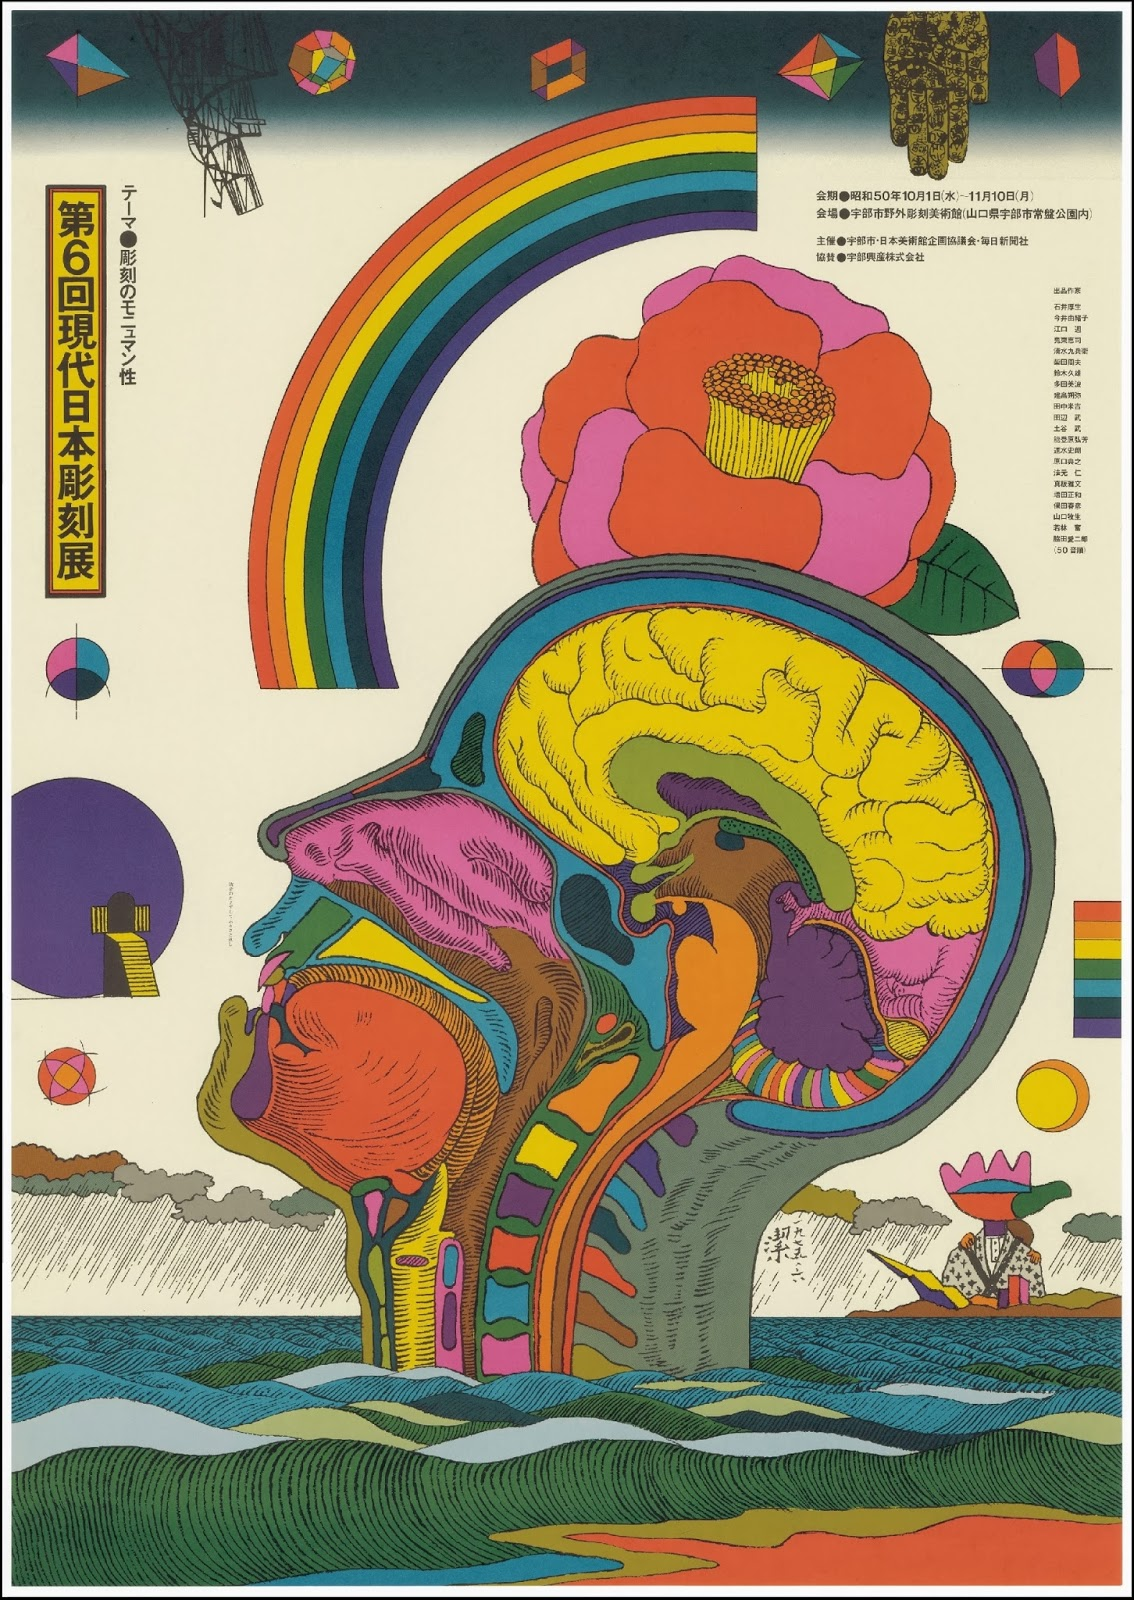 very colourful poster with transection of  human head, rainbow, flower etc